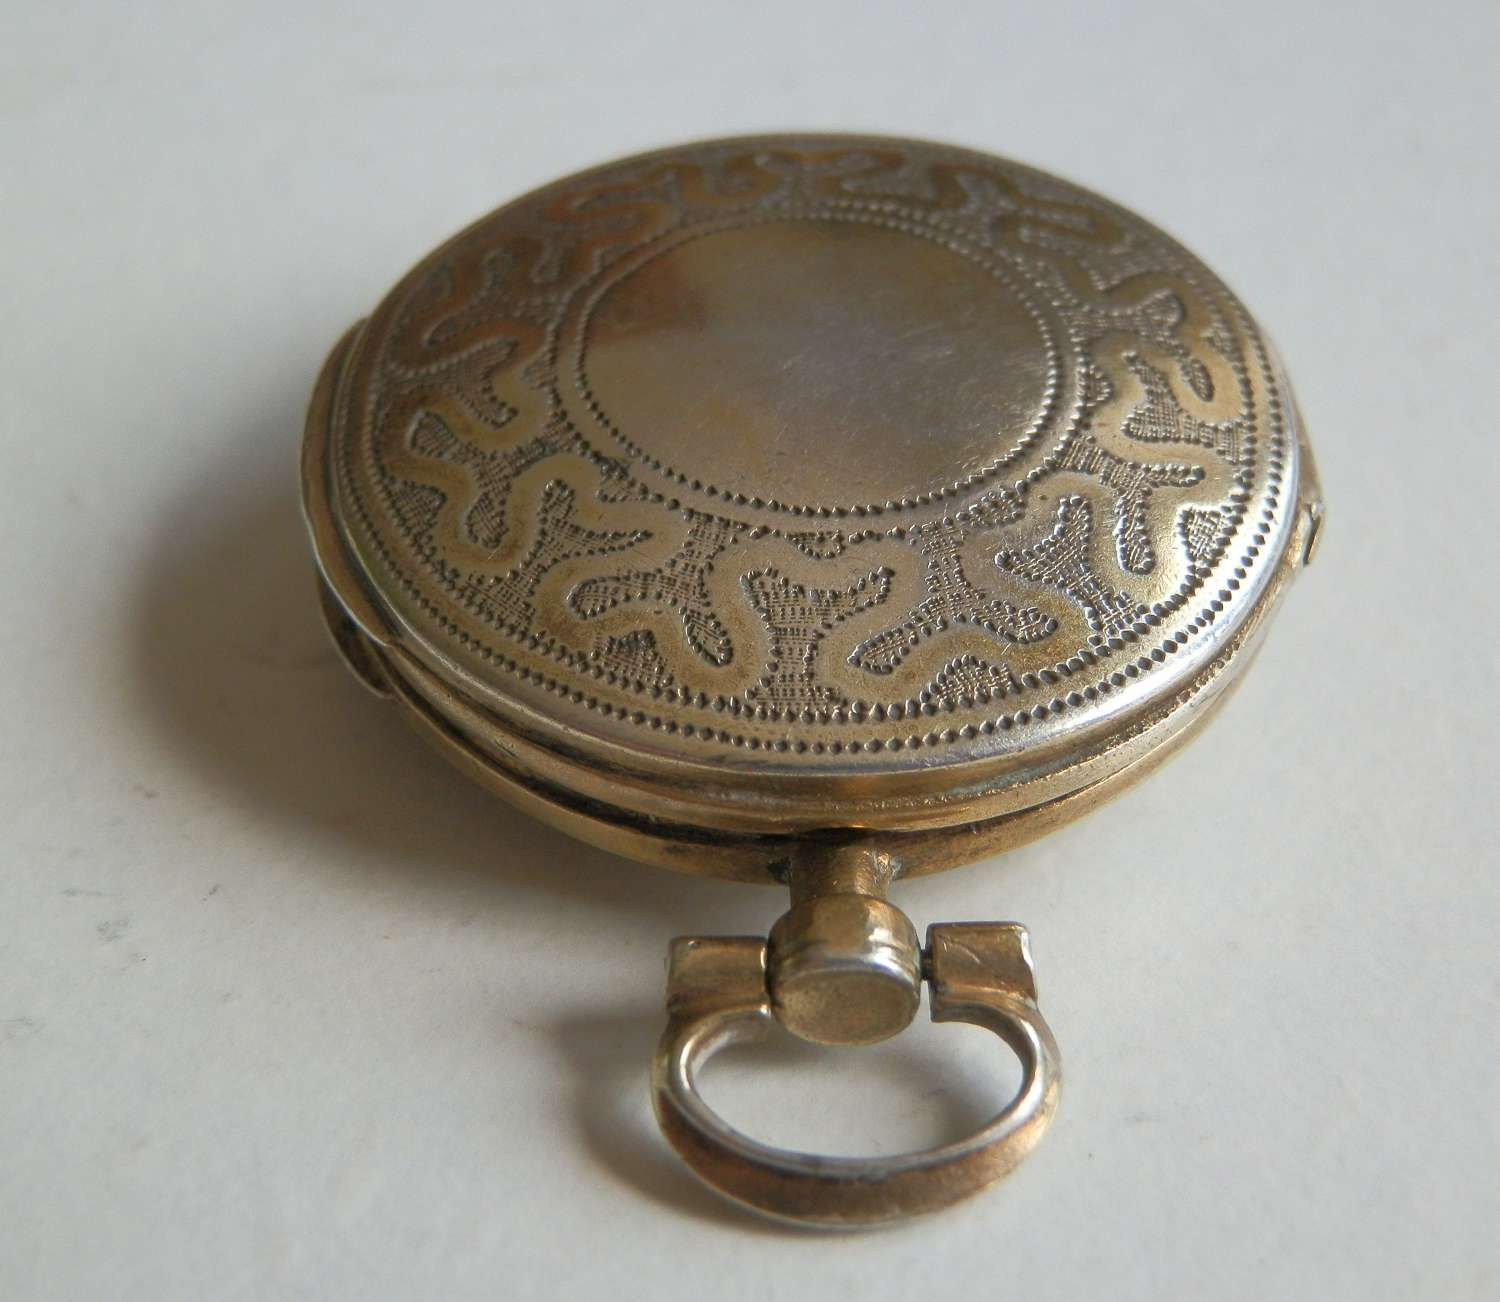 Rare George III silver gilt watch case vinaigrette, Samuel Pemberton